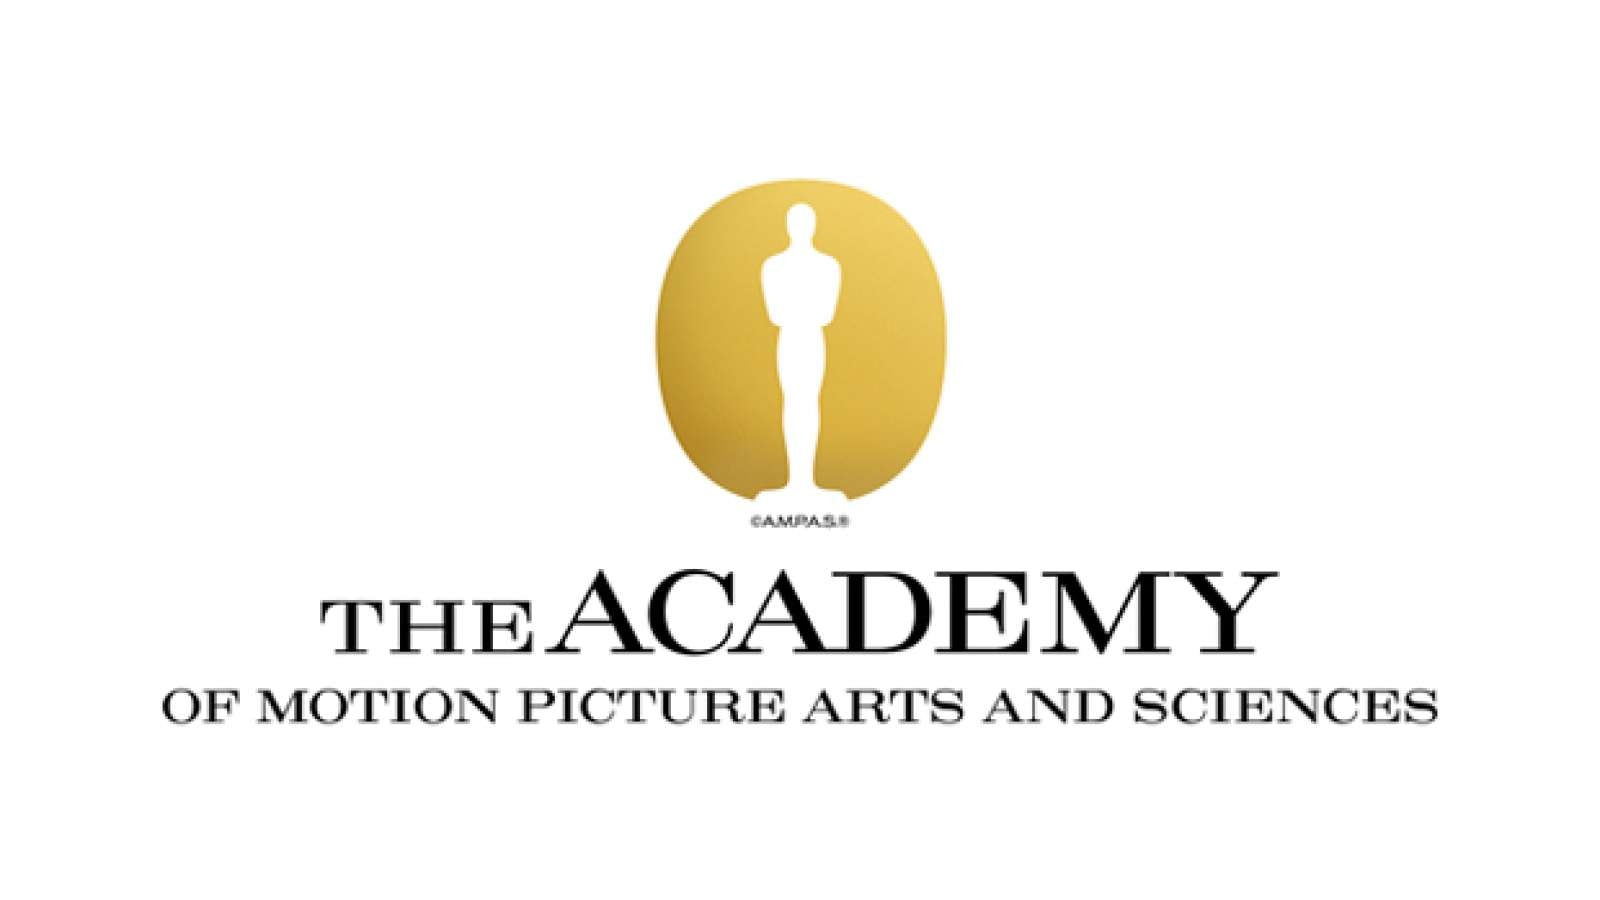 Academy of Motion Picture Arts and Sciences - Wikipedia Academy of motion picture arts and sciences gallery